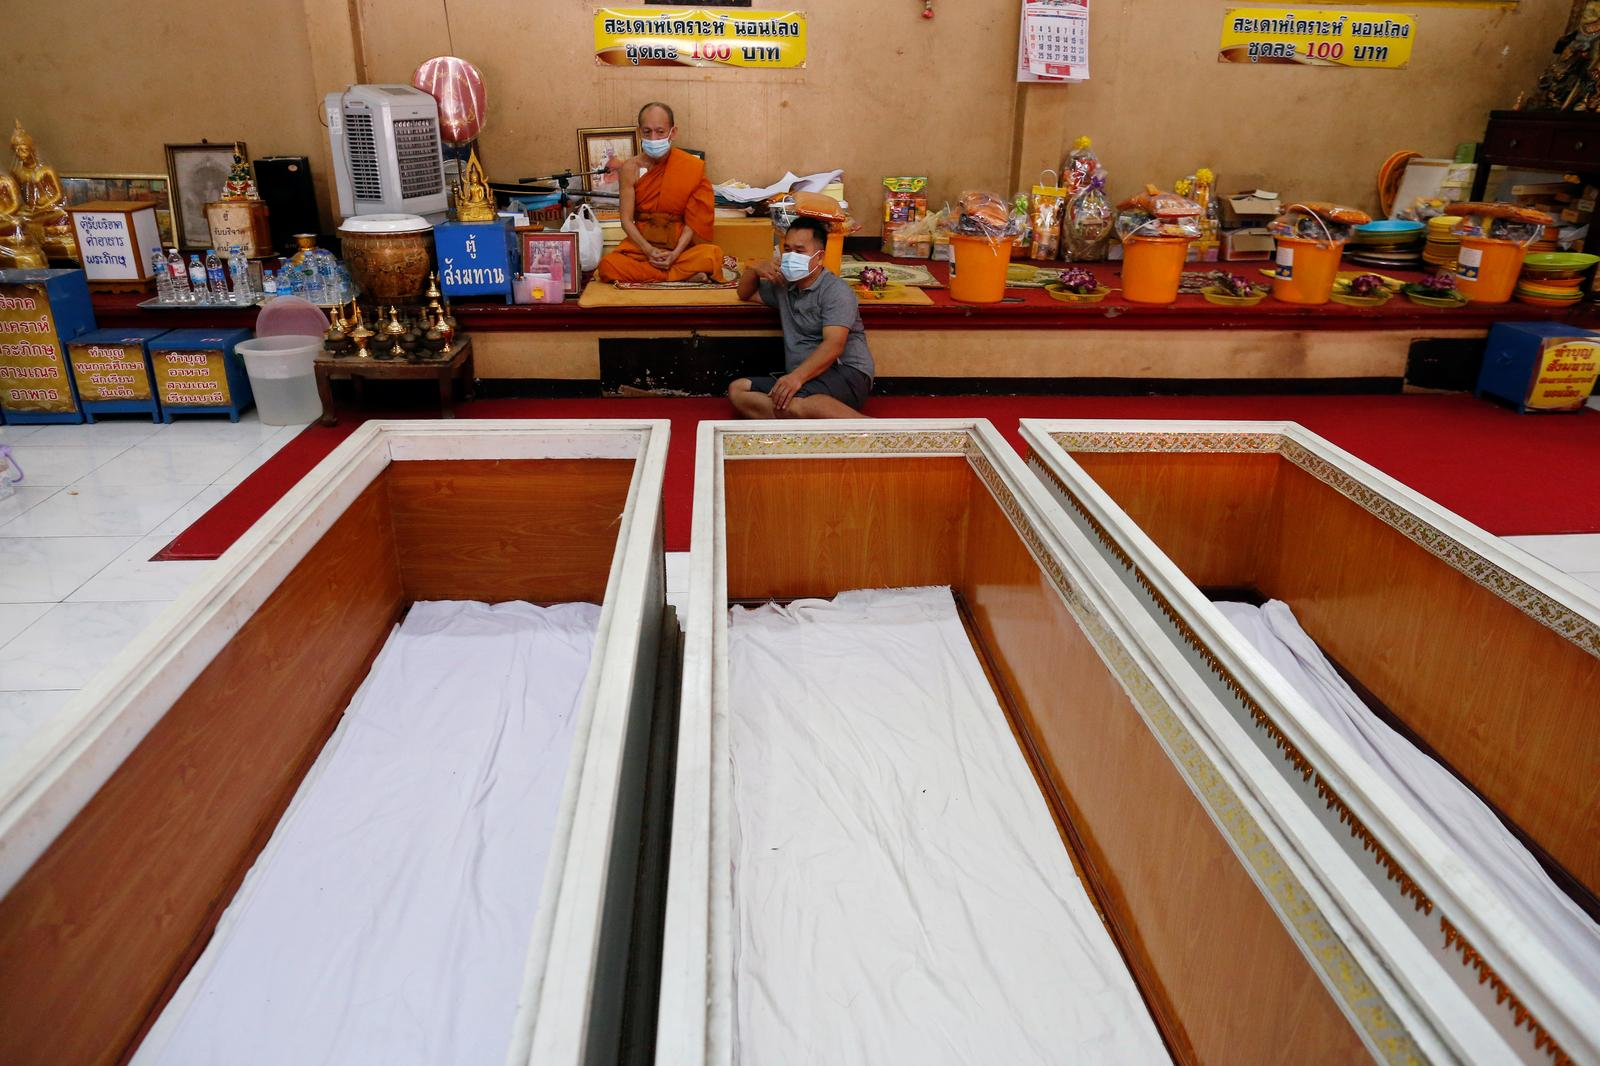 Coffins are seen for devotees to lie down in to pray in a ritual to trick death and change their luck at a temple in Bangkok, Thailand January 27, 2021. Photo: Reuters